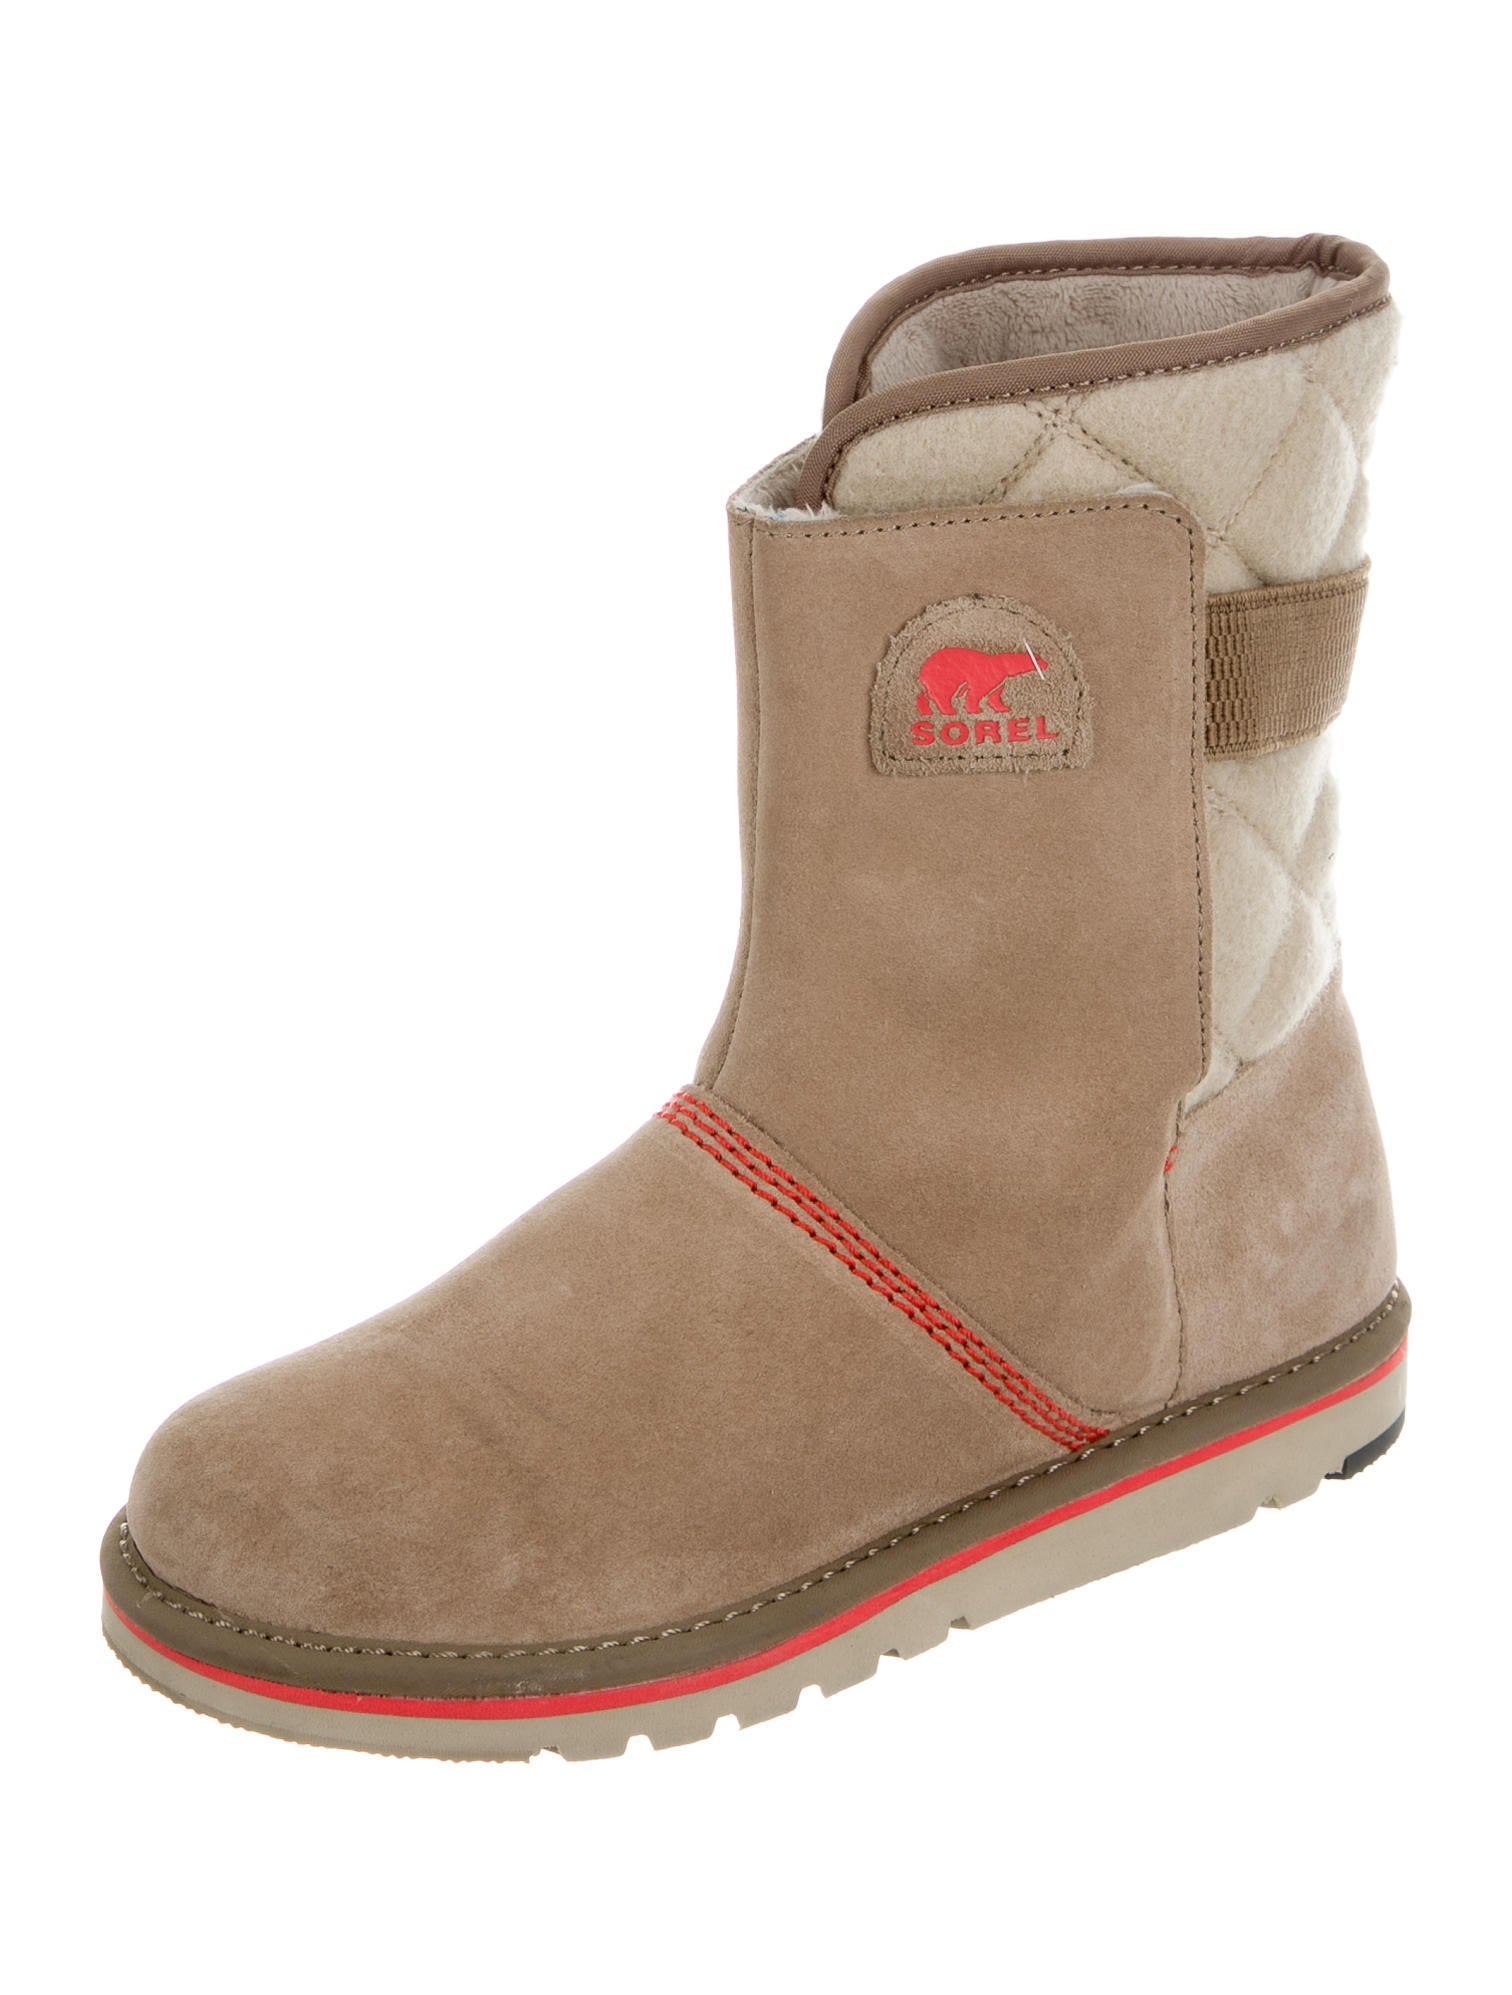 sorel suede snow boots shoes wsorl20146 the realreal